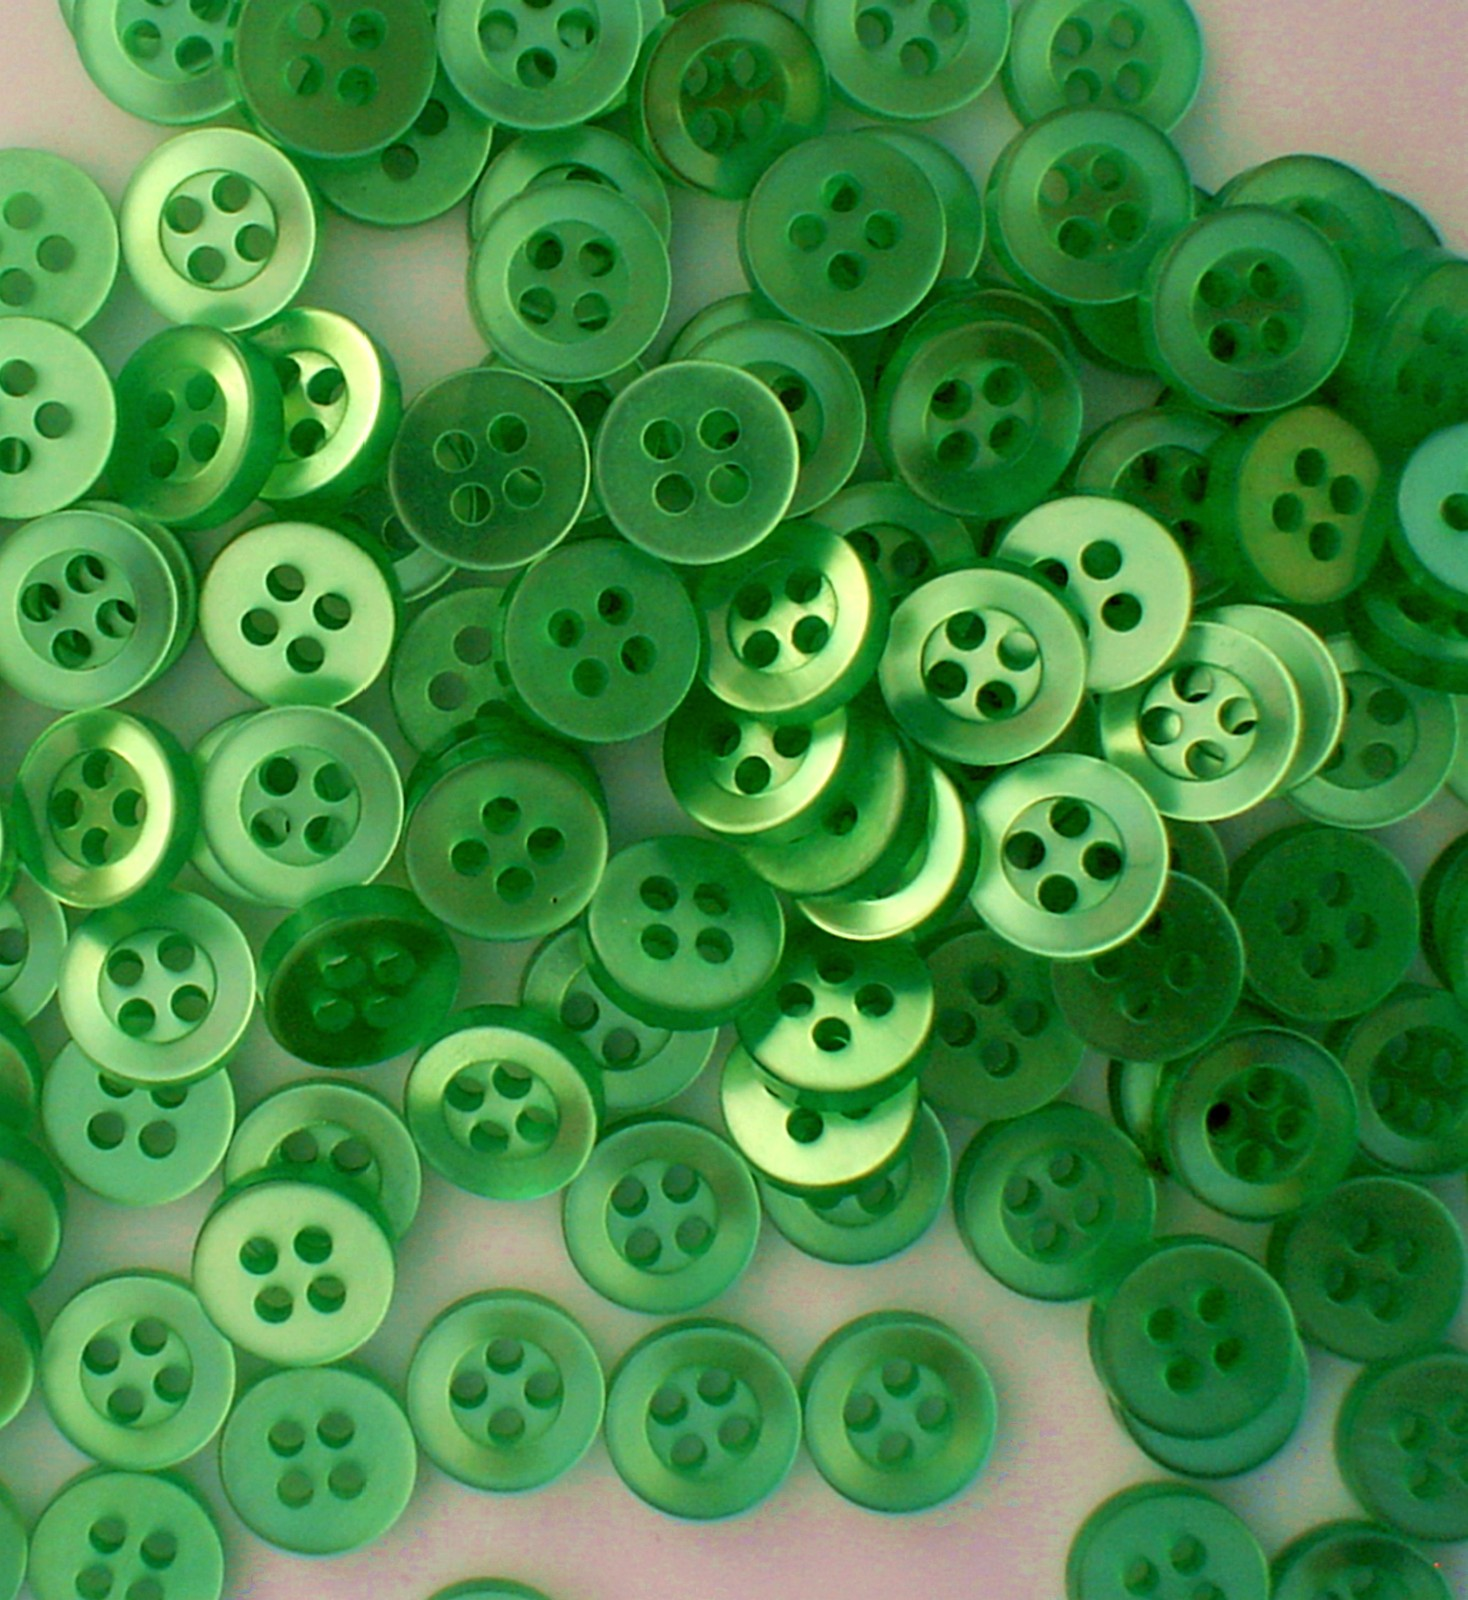 Auction 4846 500 unk light green buttons 3 8ths 4 hole contemporary nos